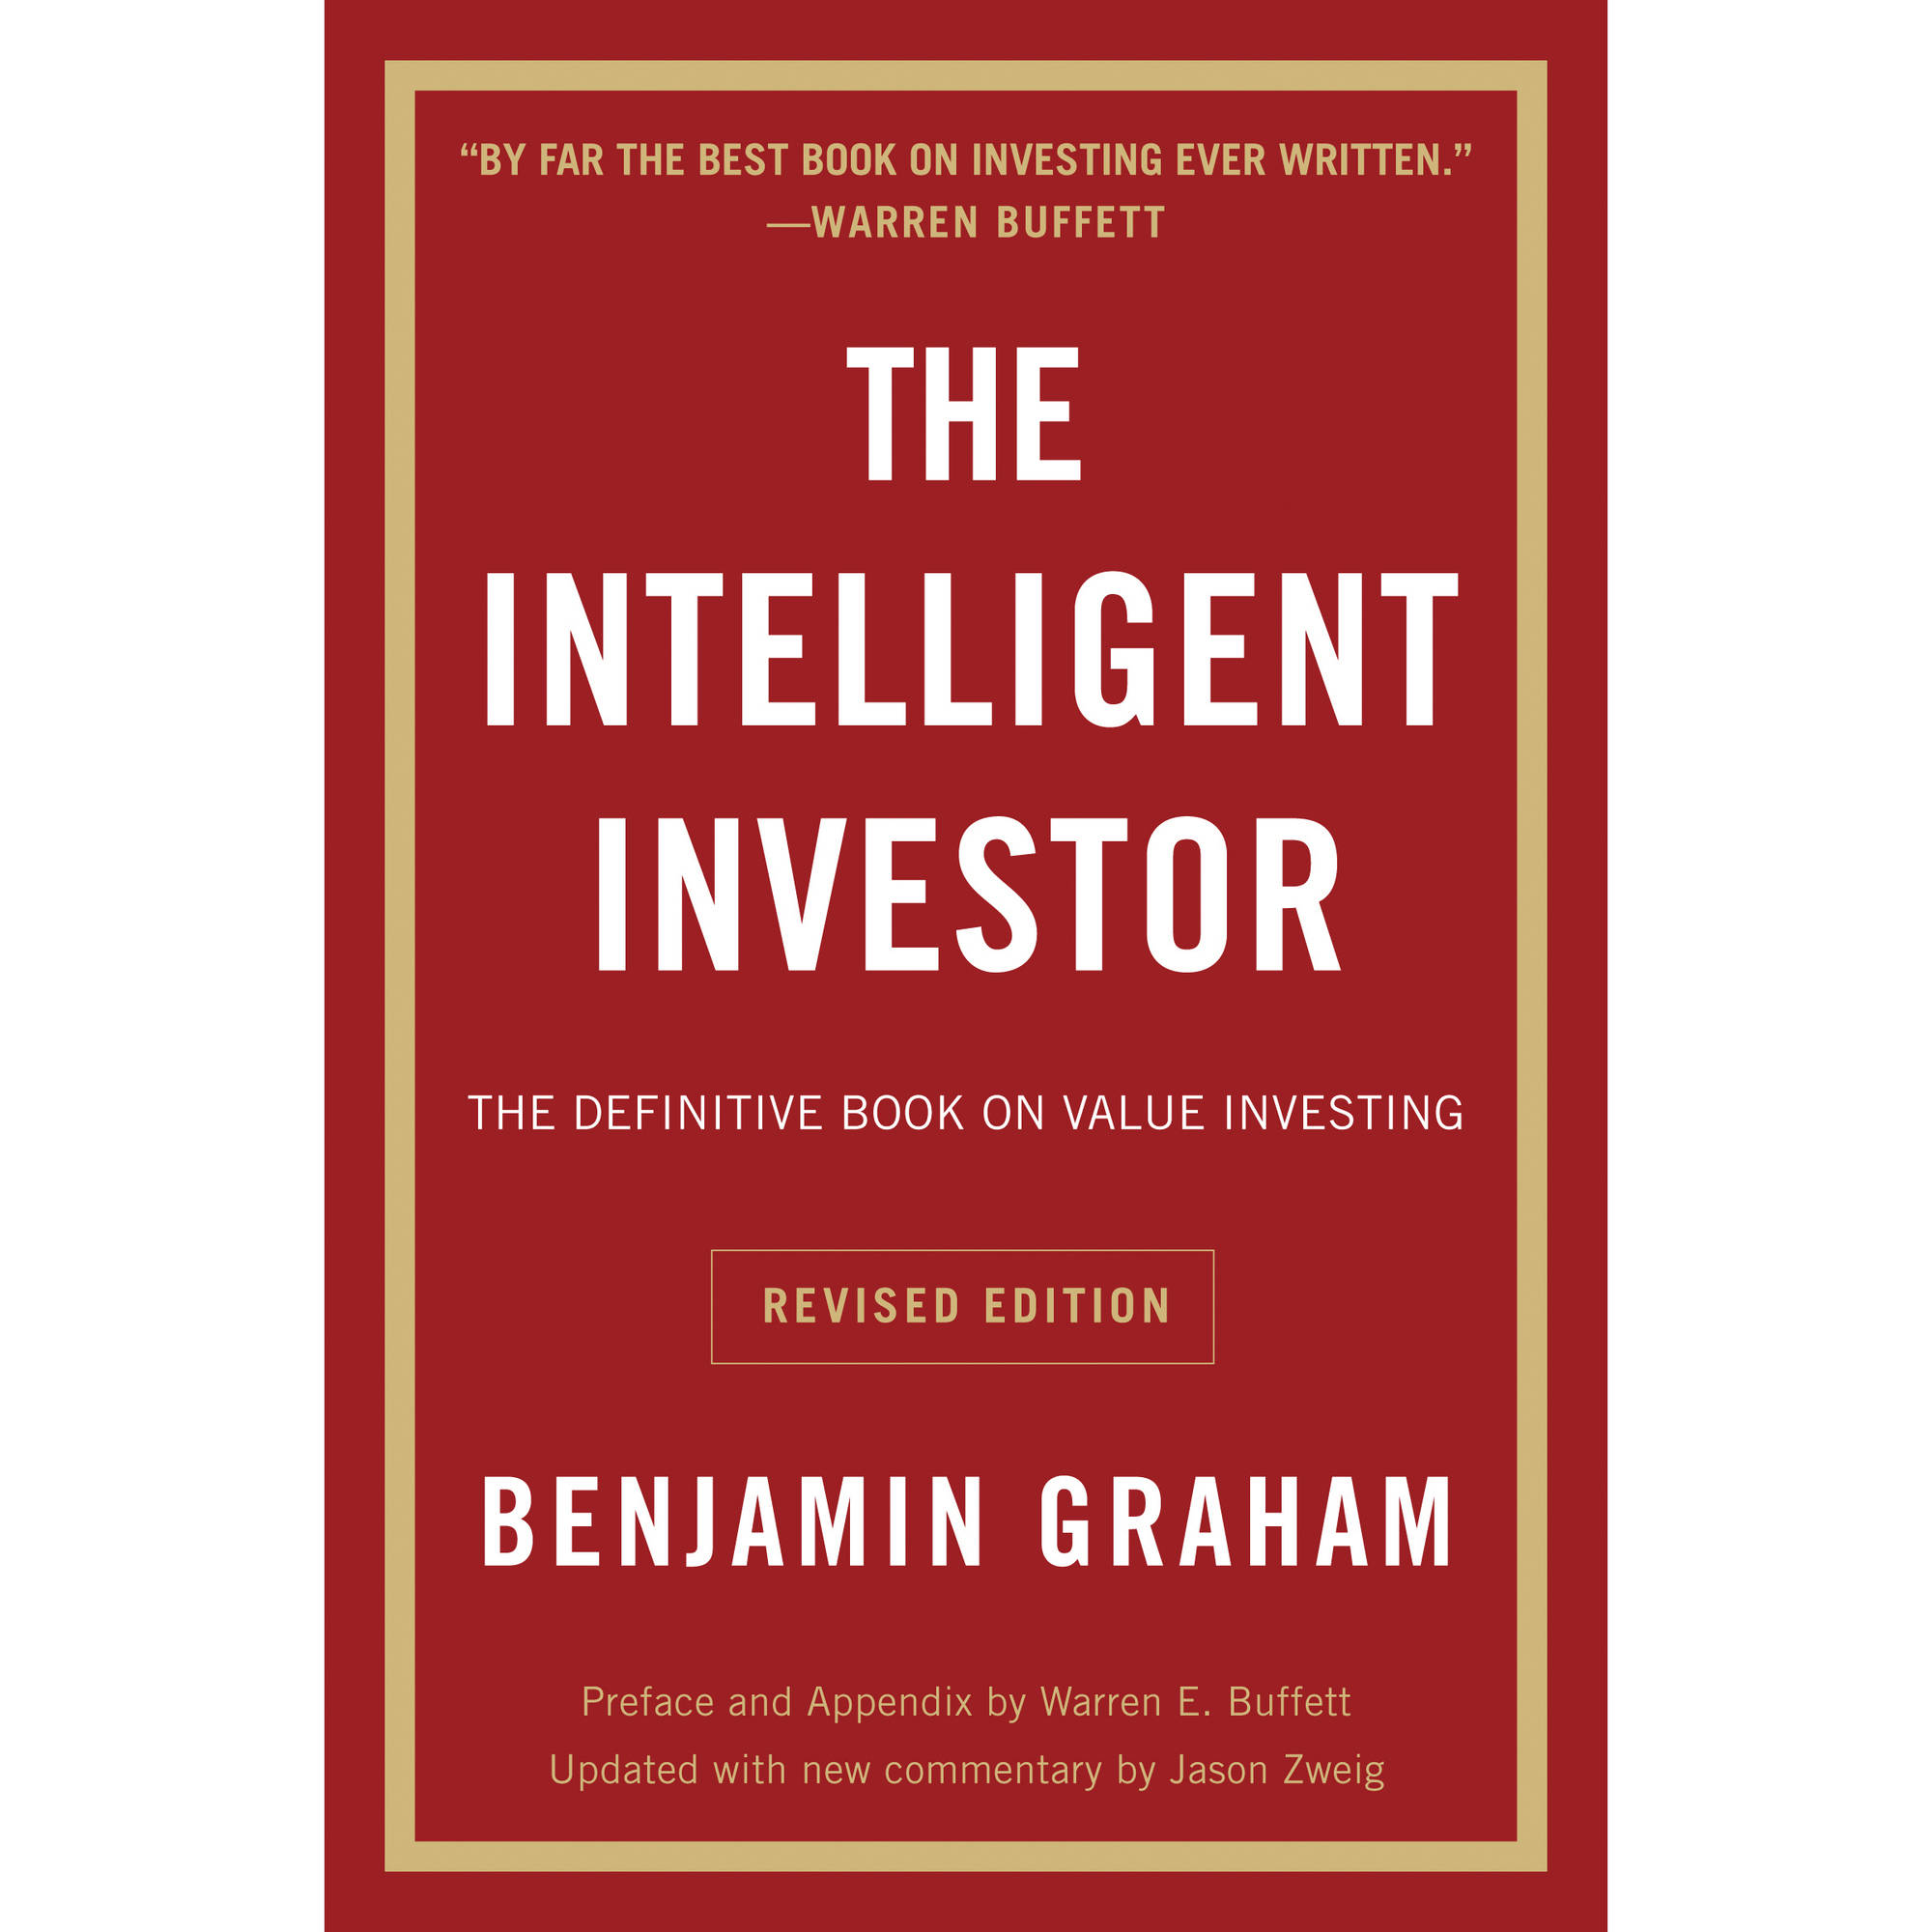 The Intelligent Investor: A Book of Practical Counsel